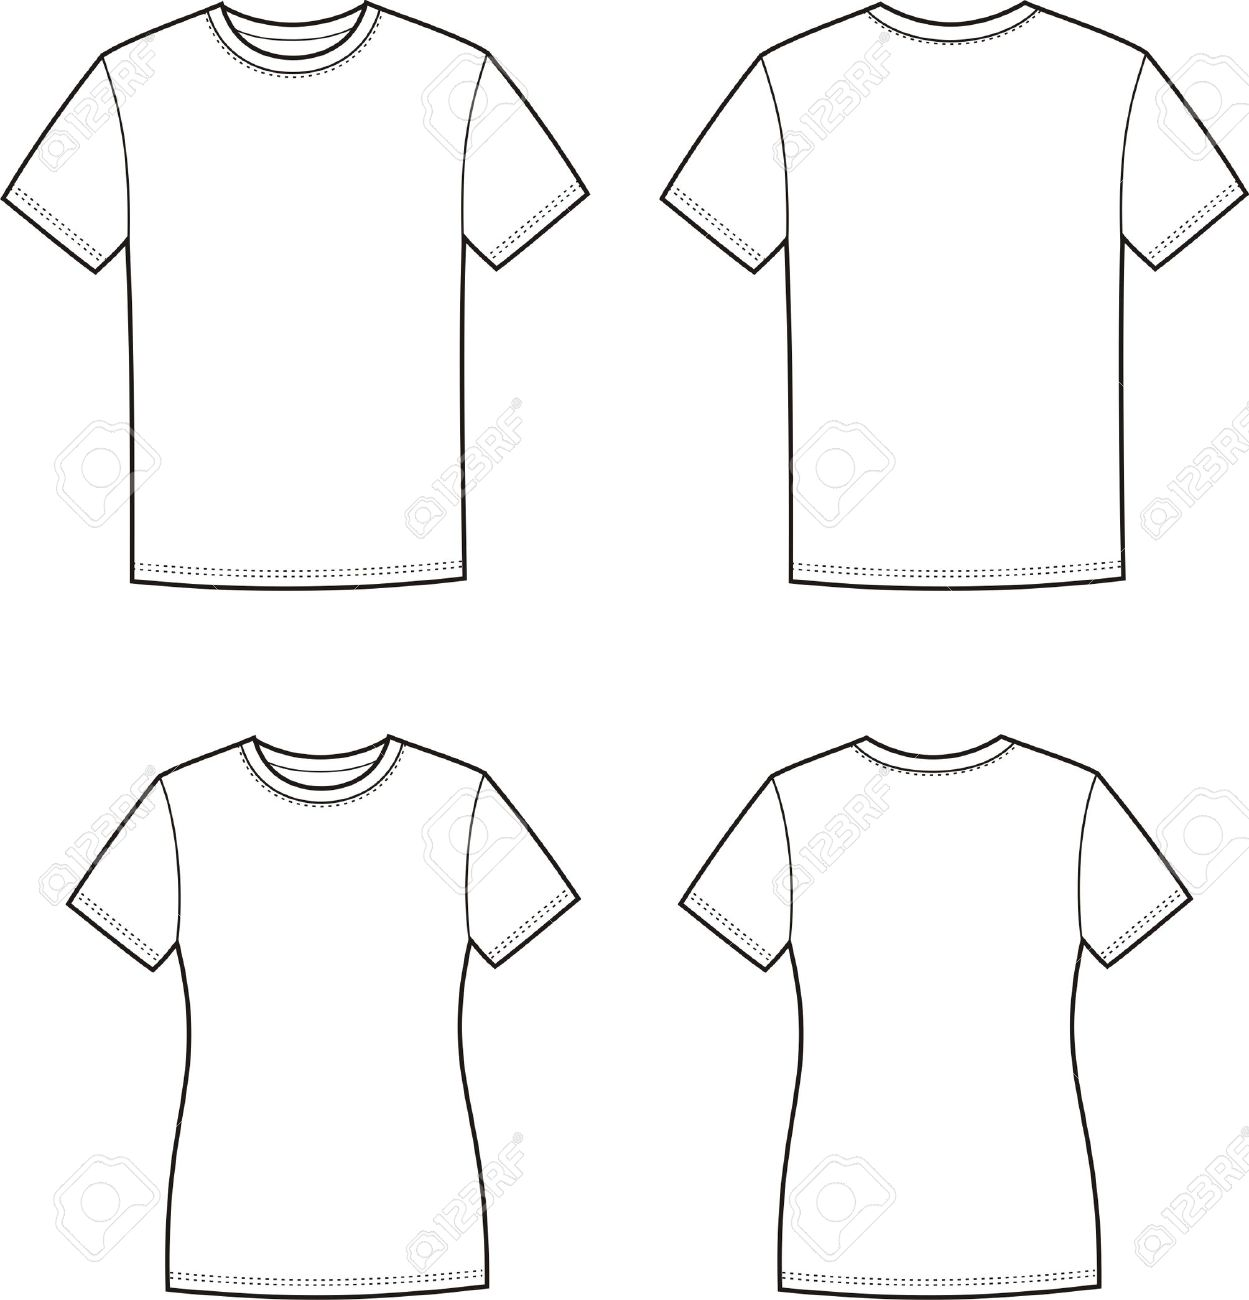 Black t shirt vector front and back - Illustration Of Men S And Women S T Shirts Front And Back Views Stock Vector